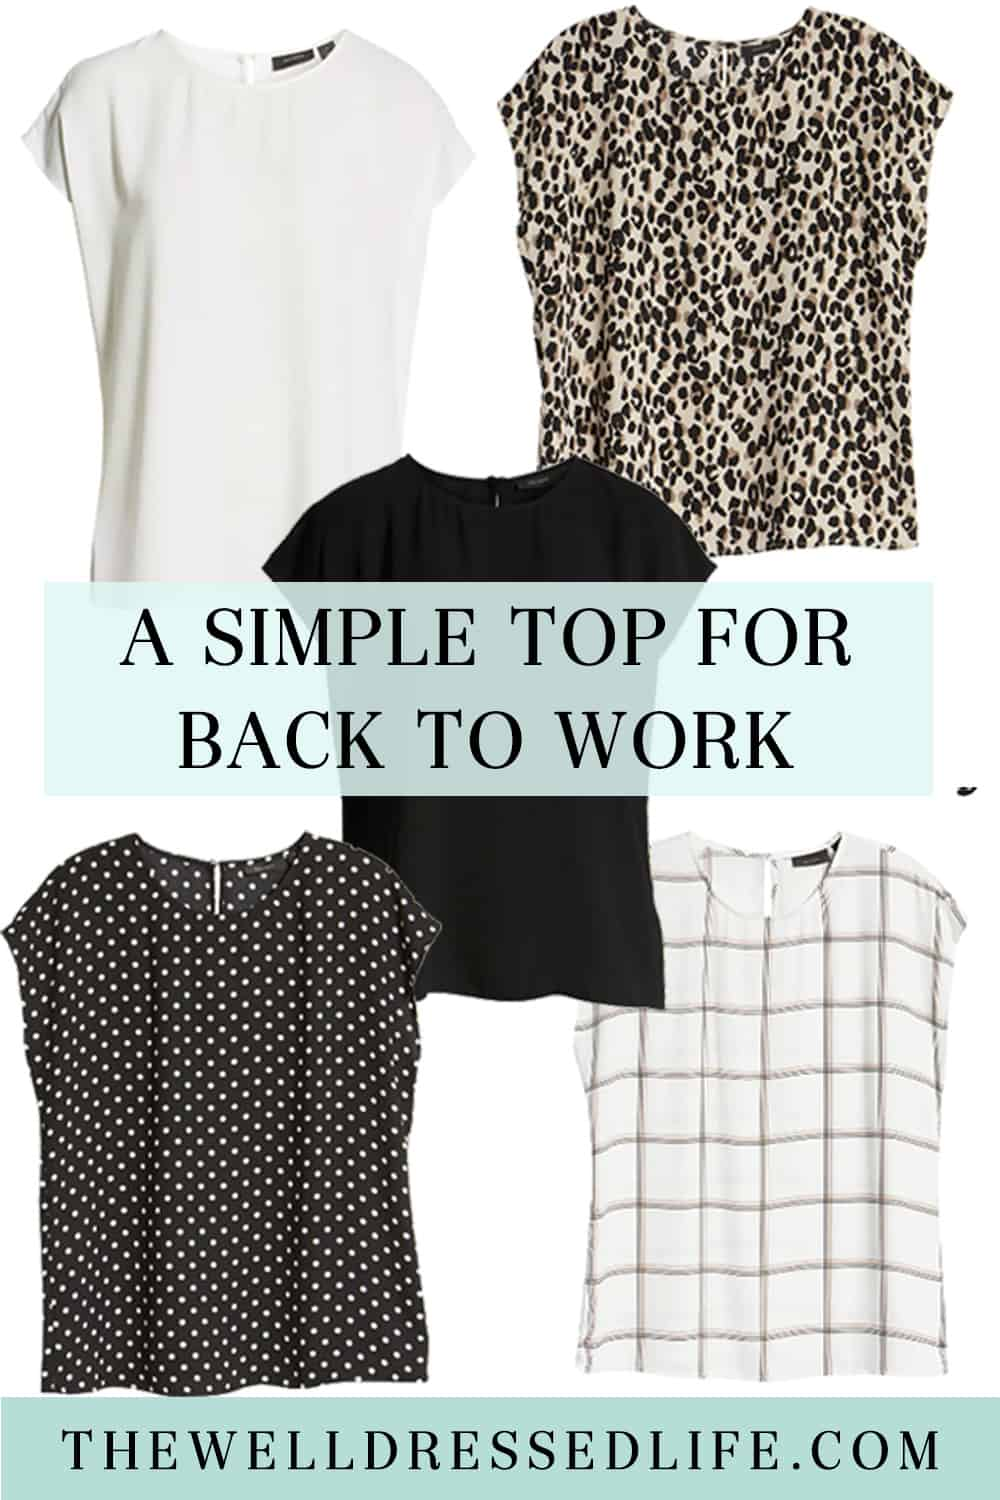 A Simple Top for Back to Work